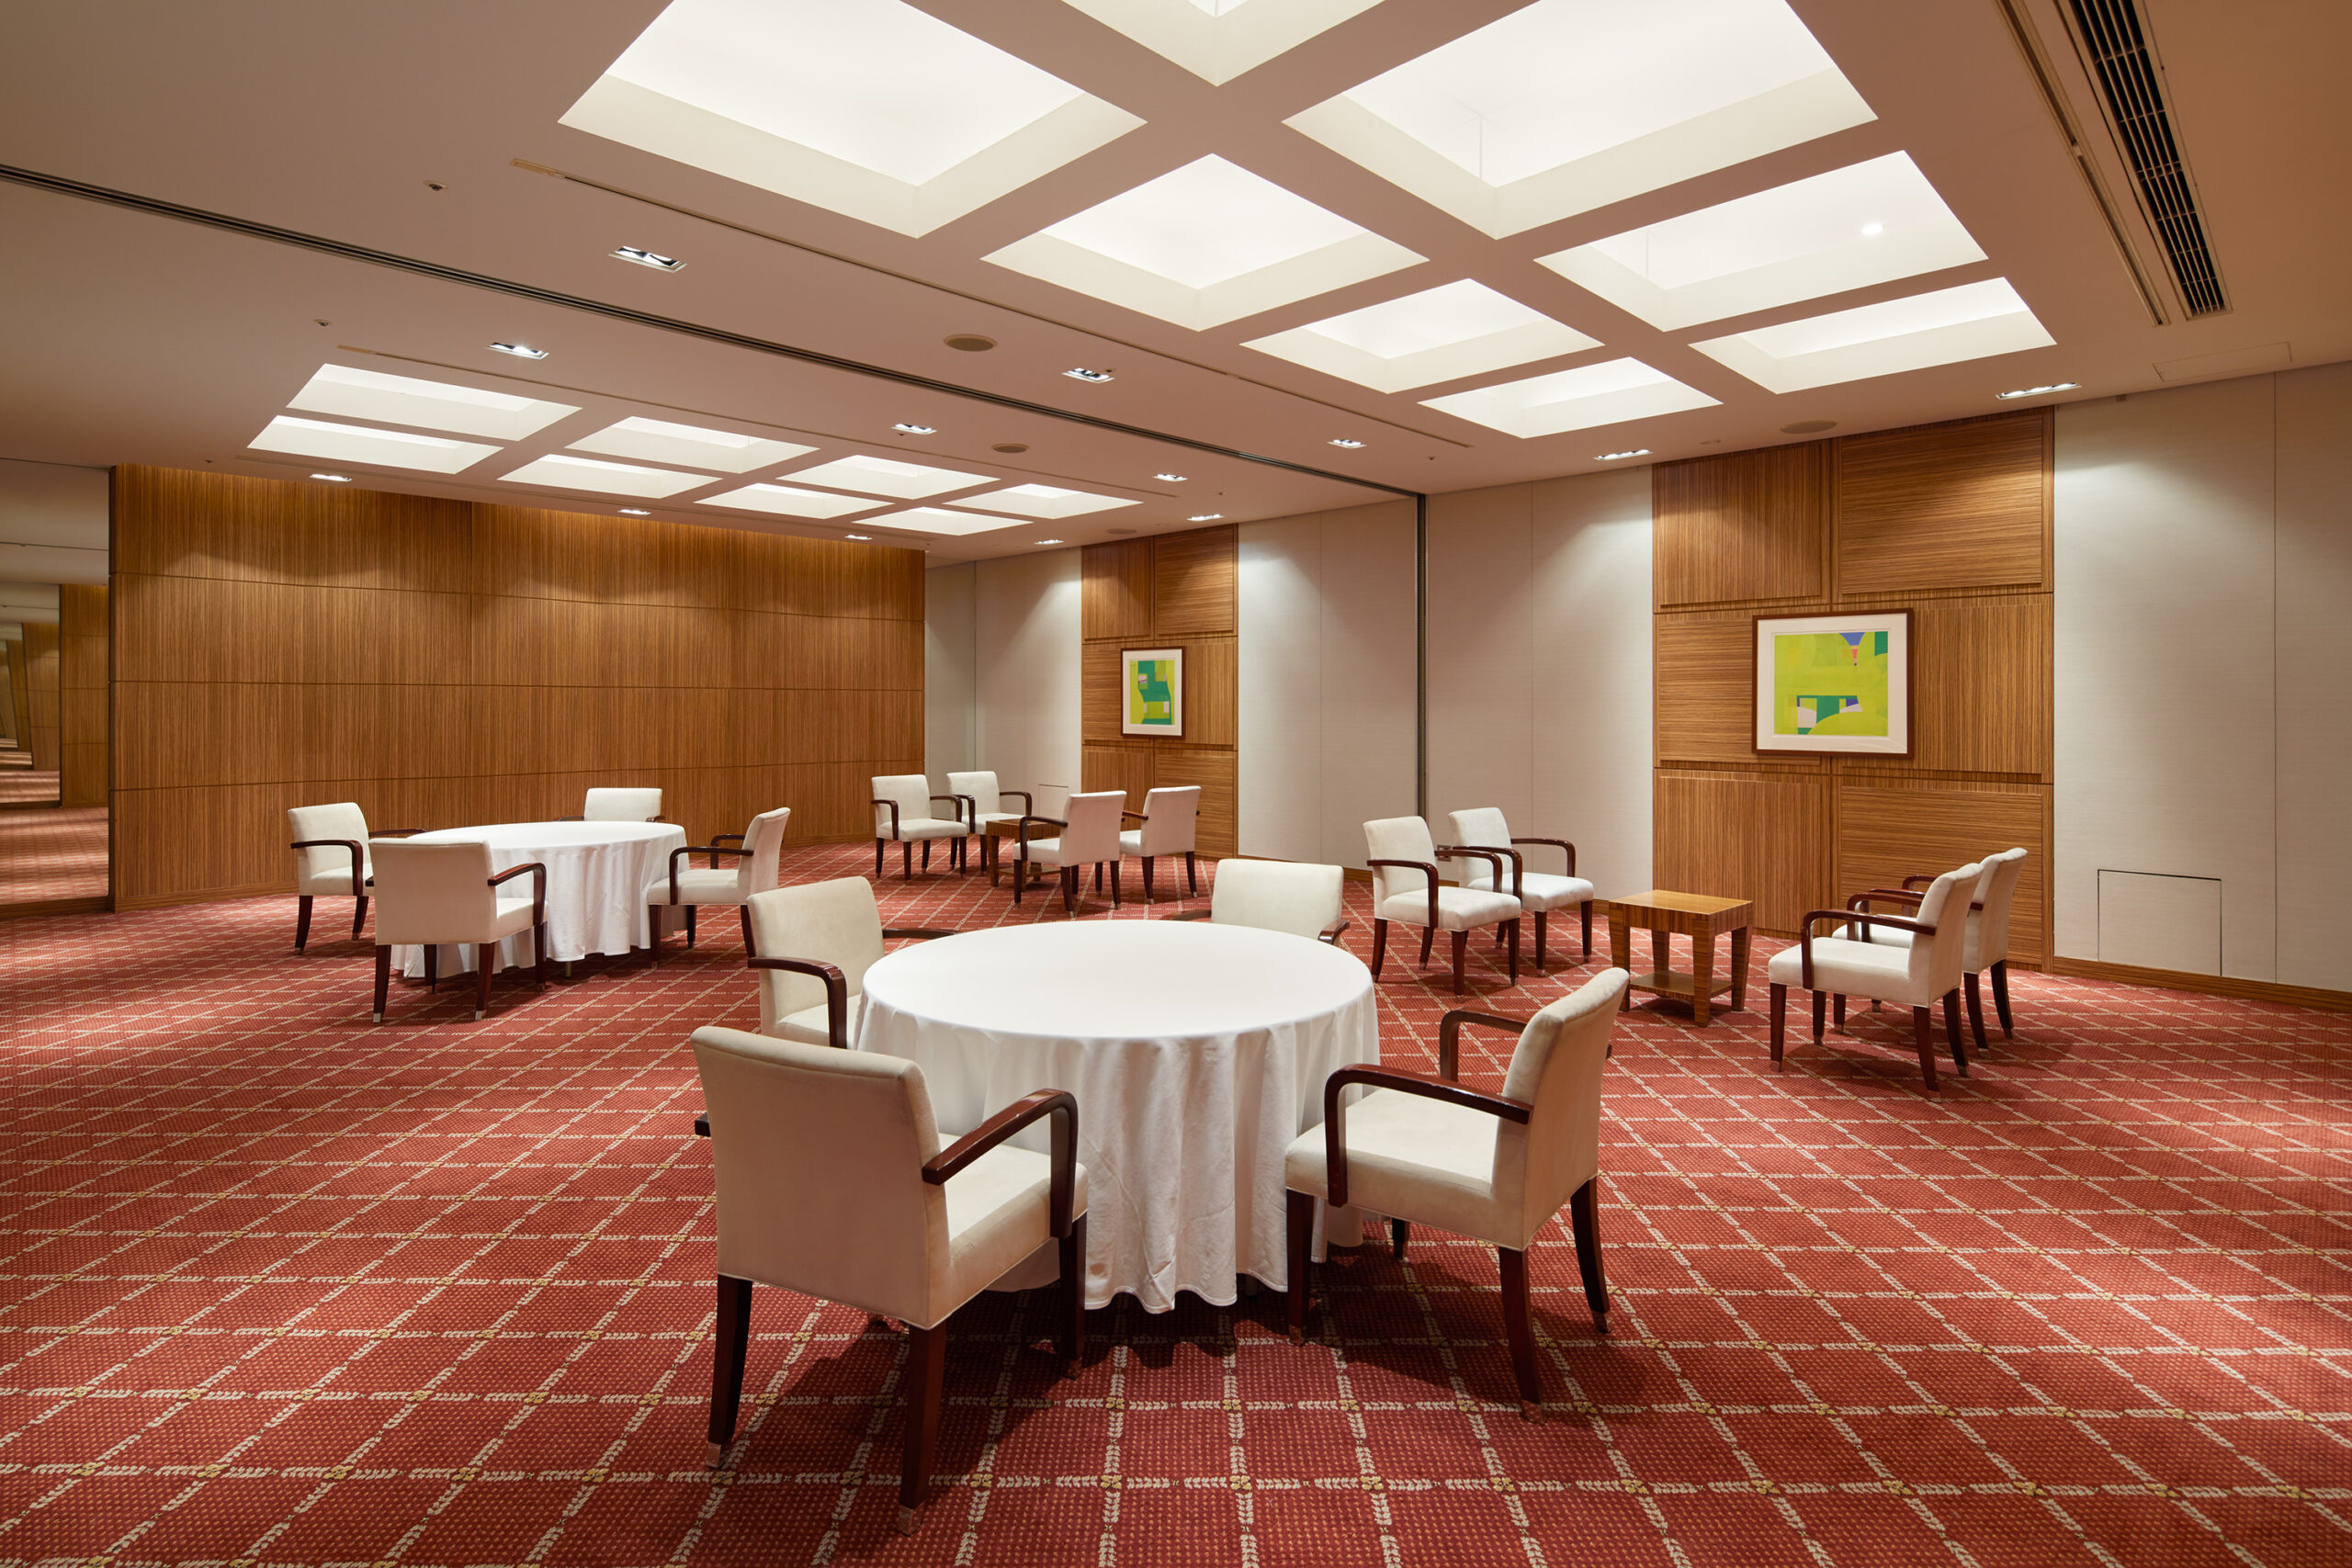 Small &Medium-sized Banquet Rooms